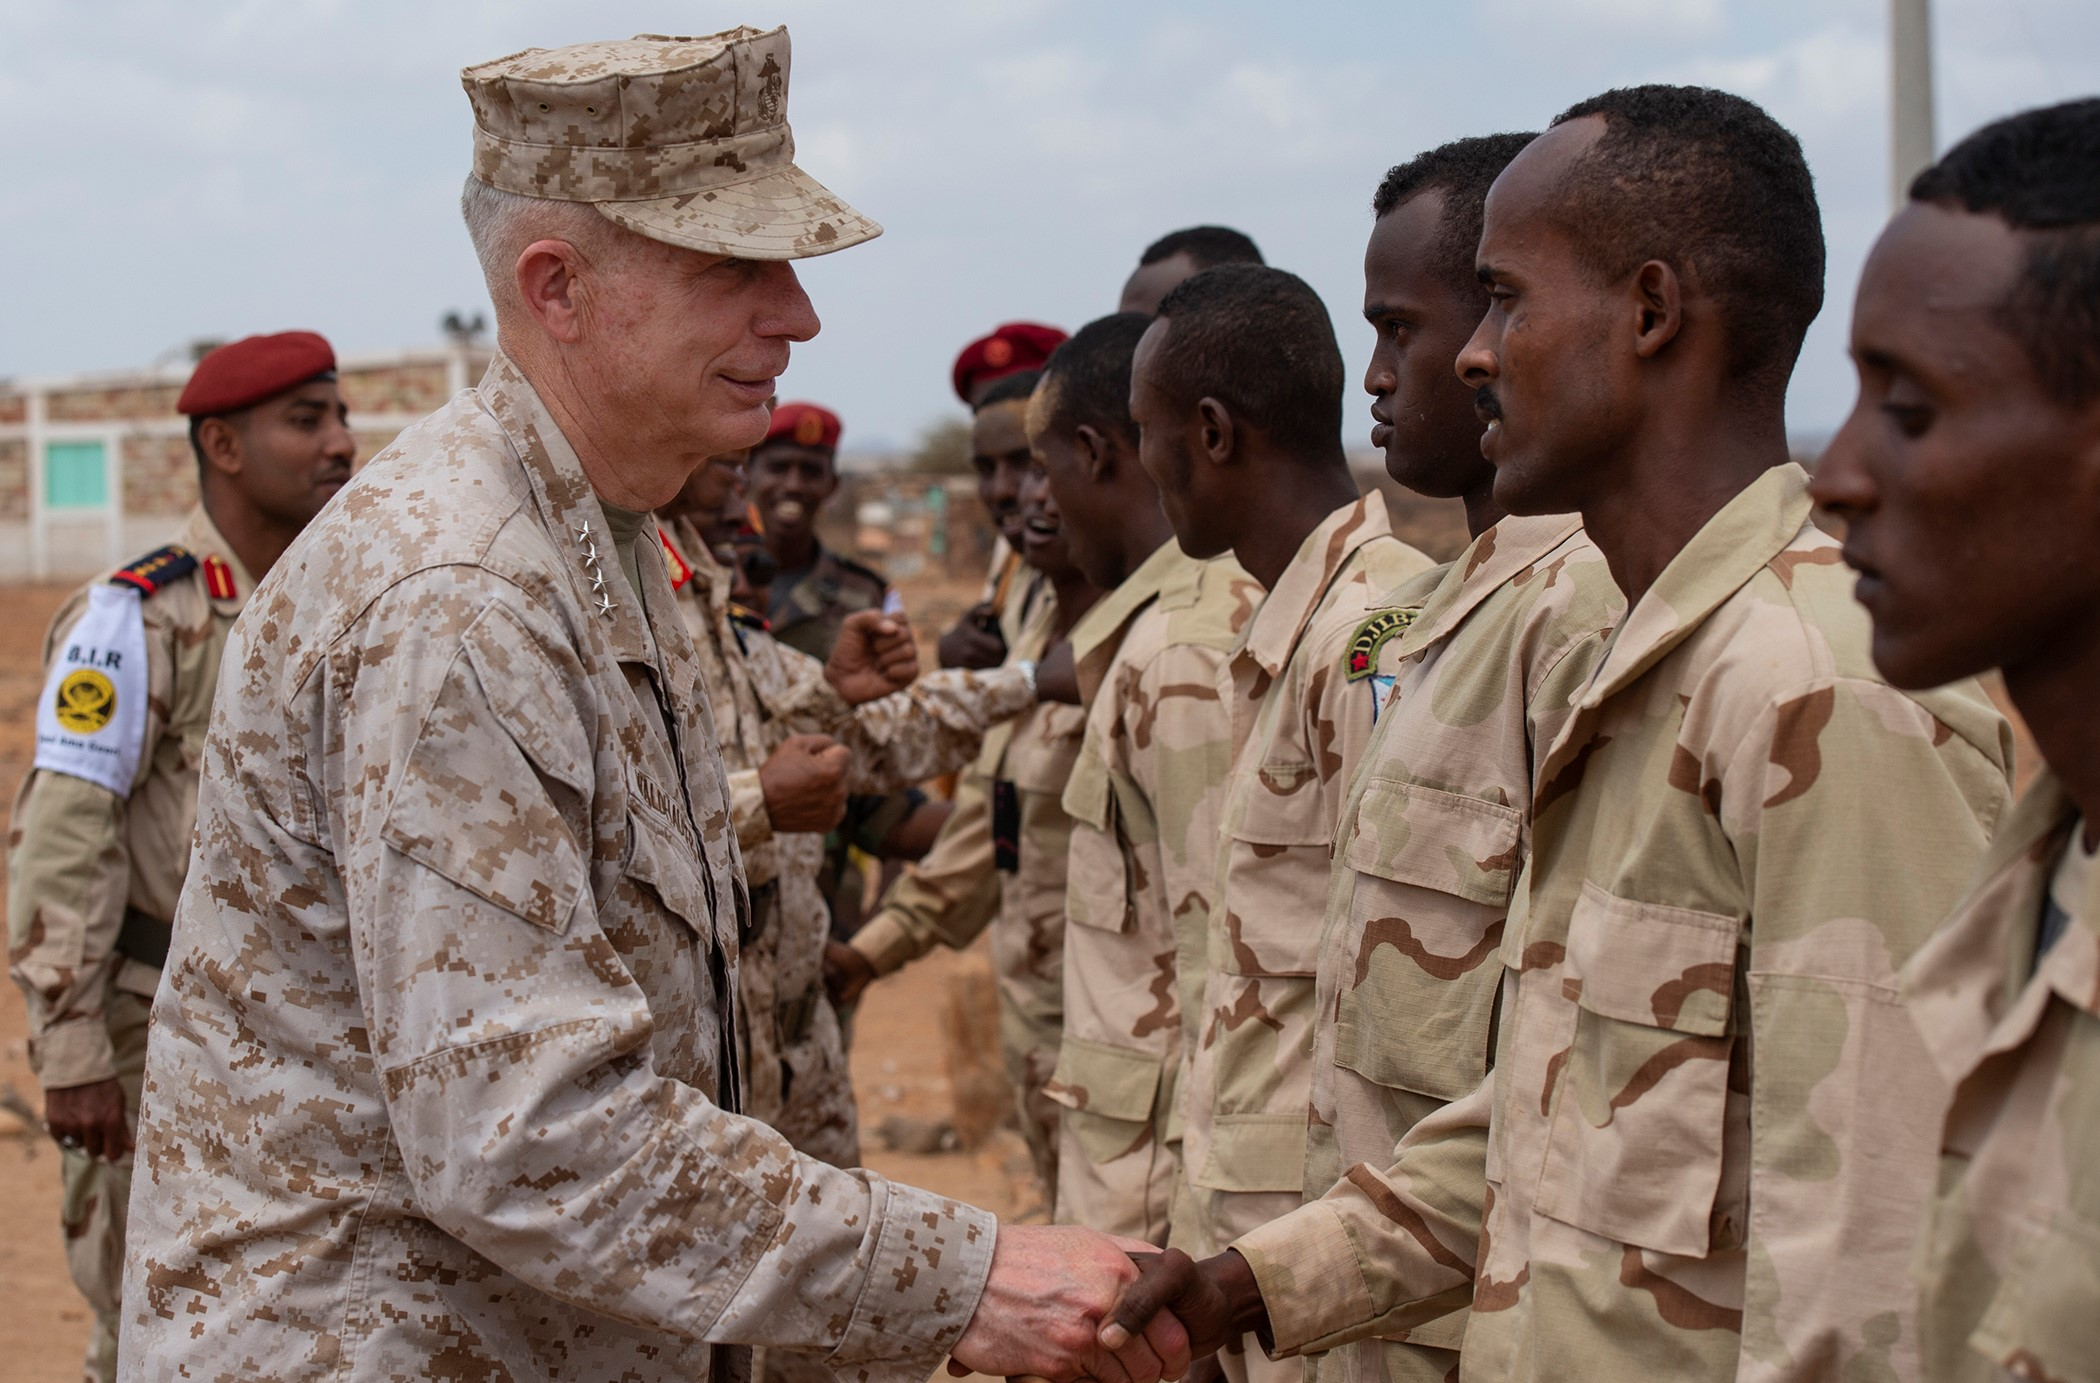 U.S. Marine Corps Gen. Thomas D. Waldhauser, commander of U.S. Africa Command, thanks soldiers from the Djiboutian army's elite military force, the Rapid Intervention Battalion, after demonstrating hand-to-hand combat during a visit with senior Djiboutian officials, including Chief of General Staff of the Djibouti Armed Forces Gen. Zakaria Cheikh Ibrahim, at a training base in Djibouti, March 21, 2019. Waldhauser visited in order to discuss the growth and development of Djiboutian security forces. (U.S. Air Force photo by Tech. Sgt. Shawn Nickel)